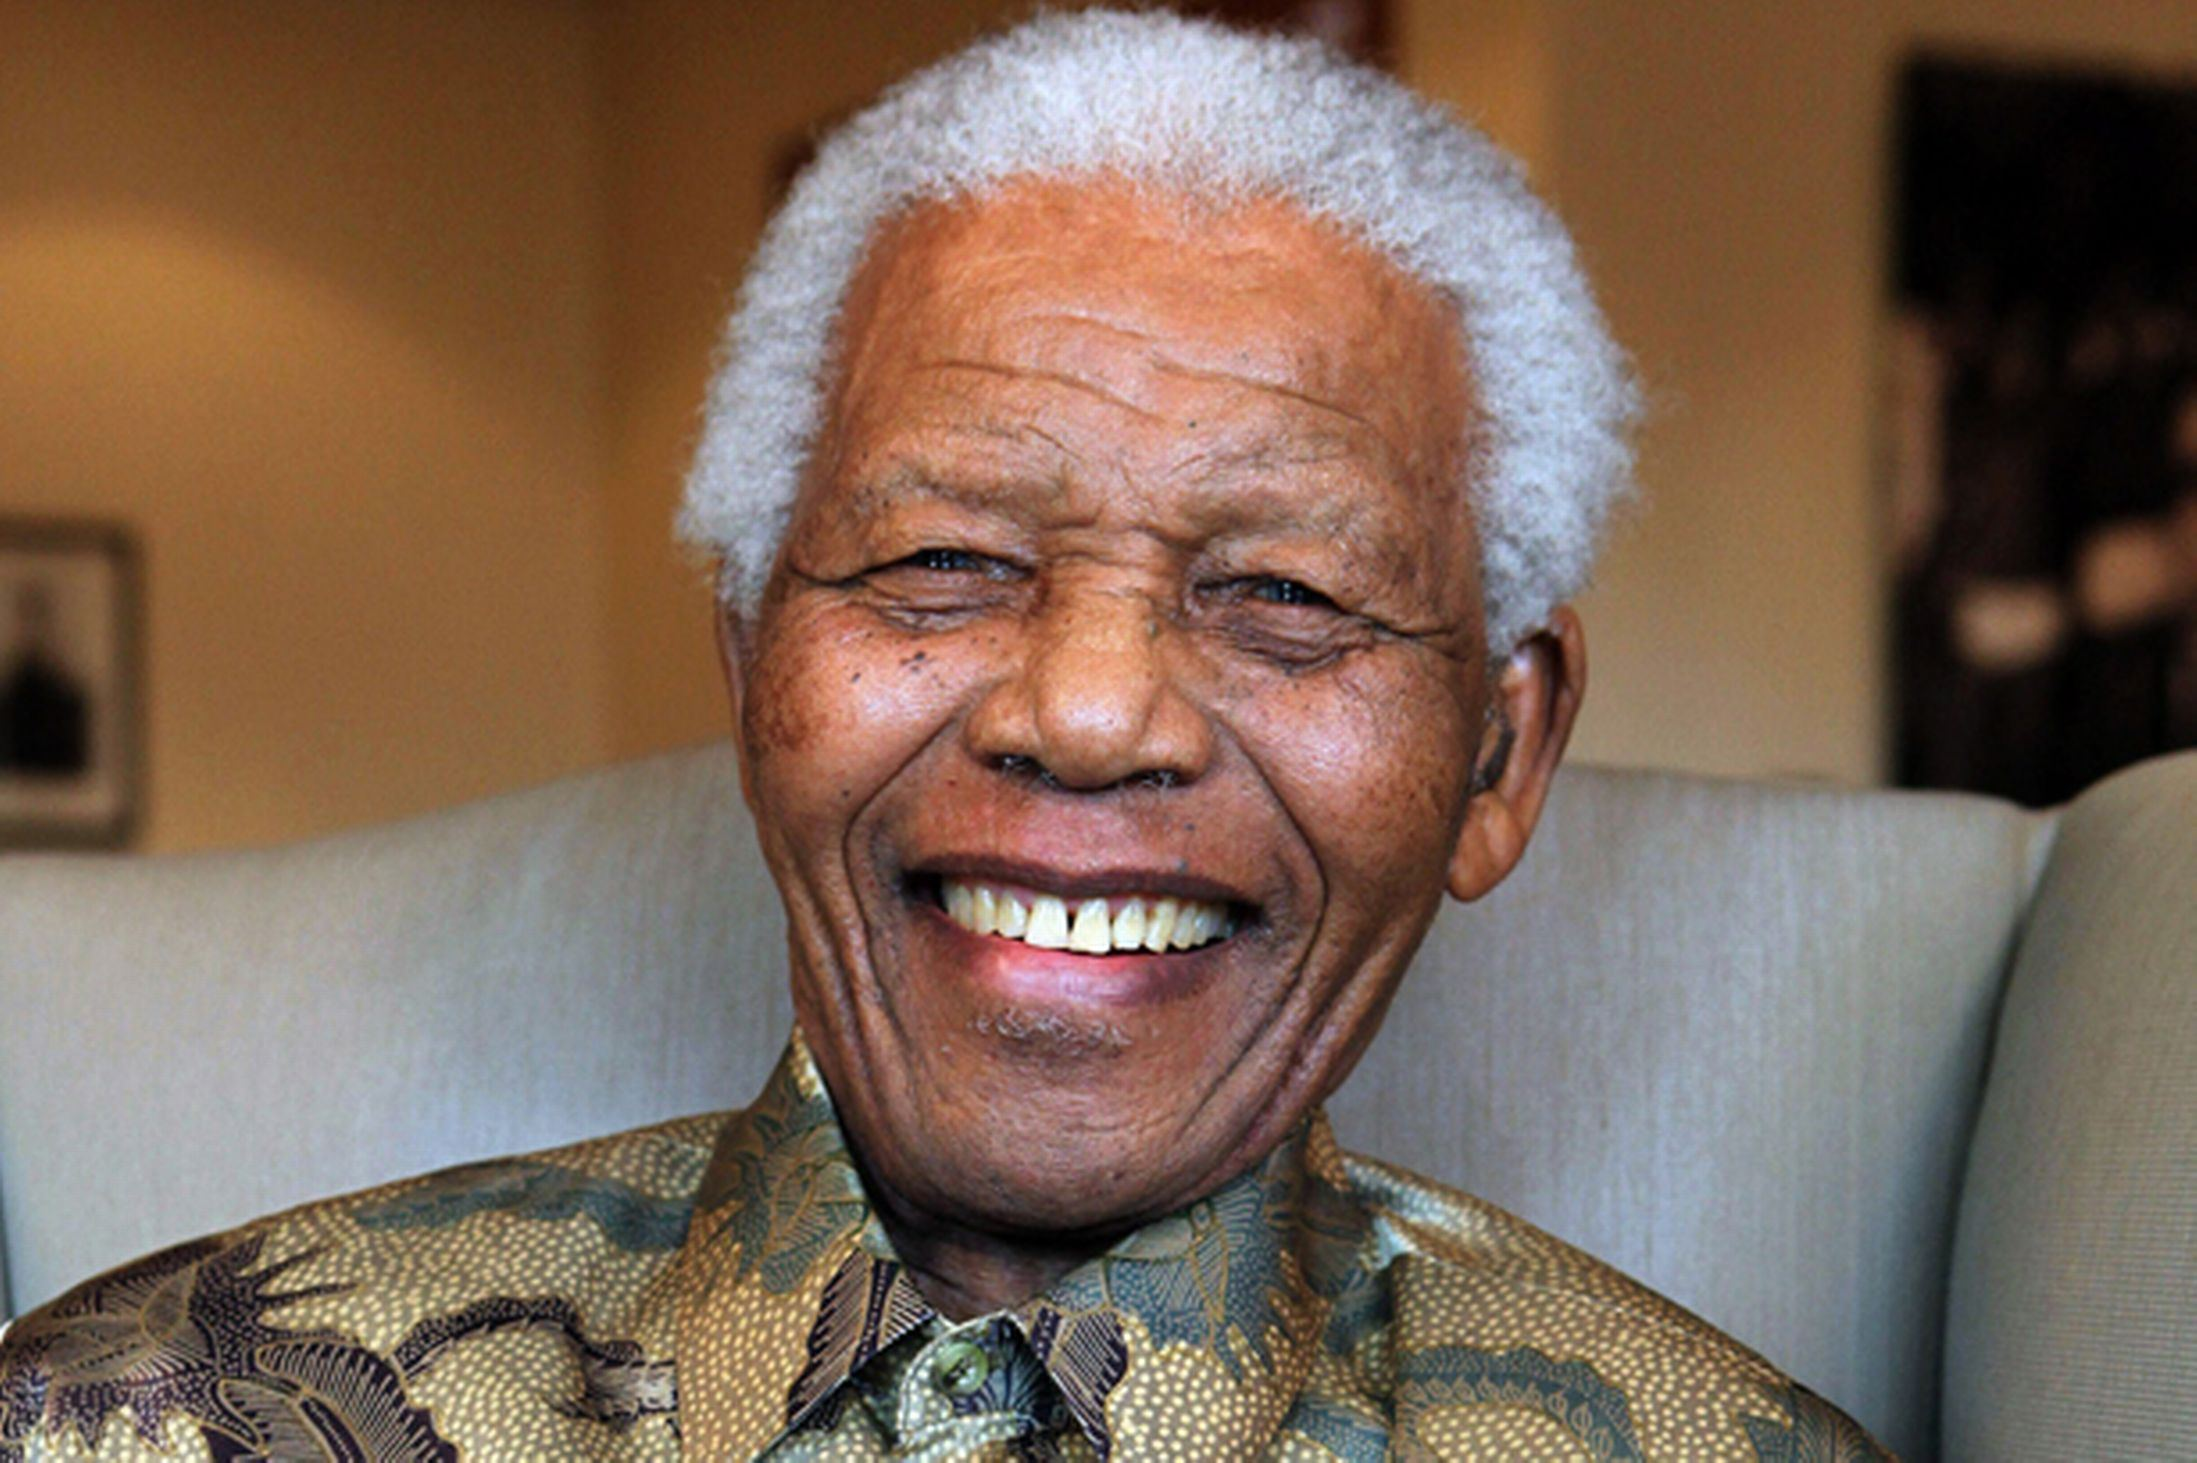 NELSON MANDELA – III: The Rise, The Imprisonment And The Presidency